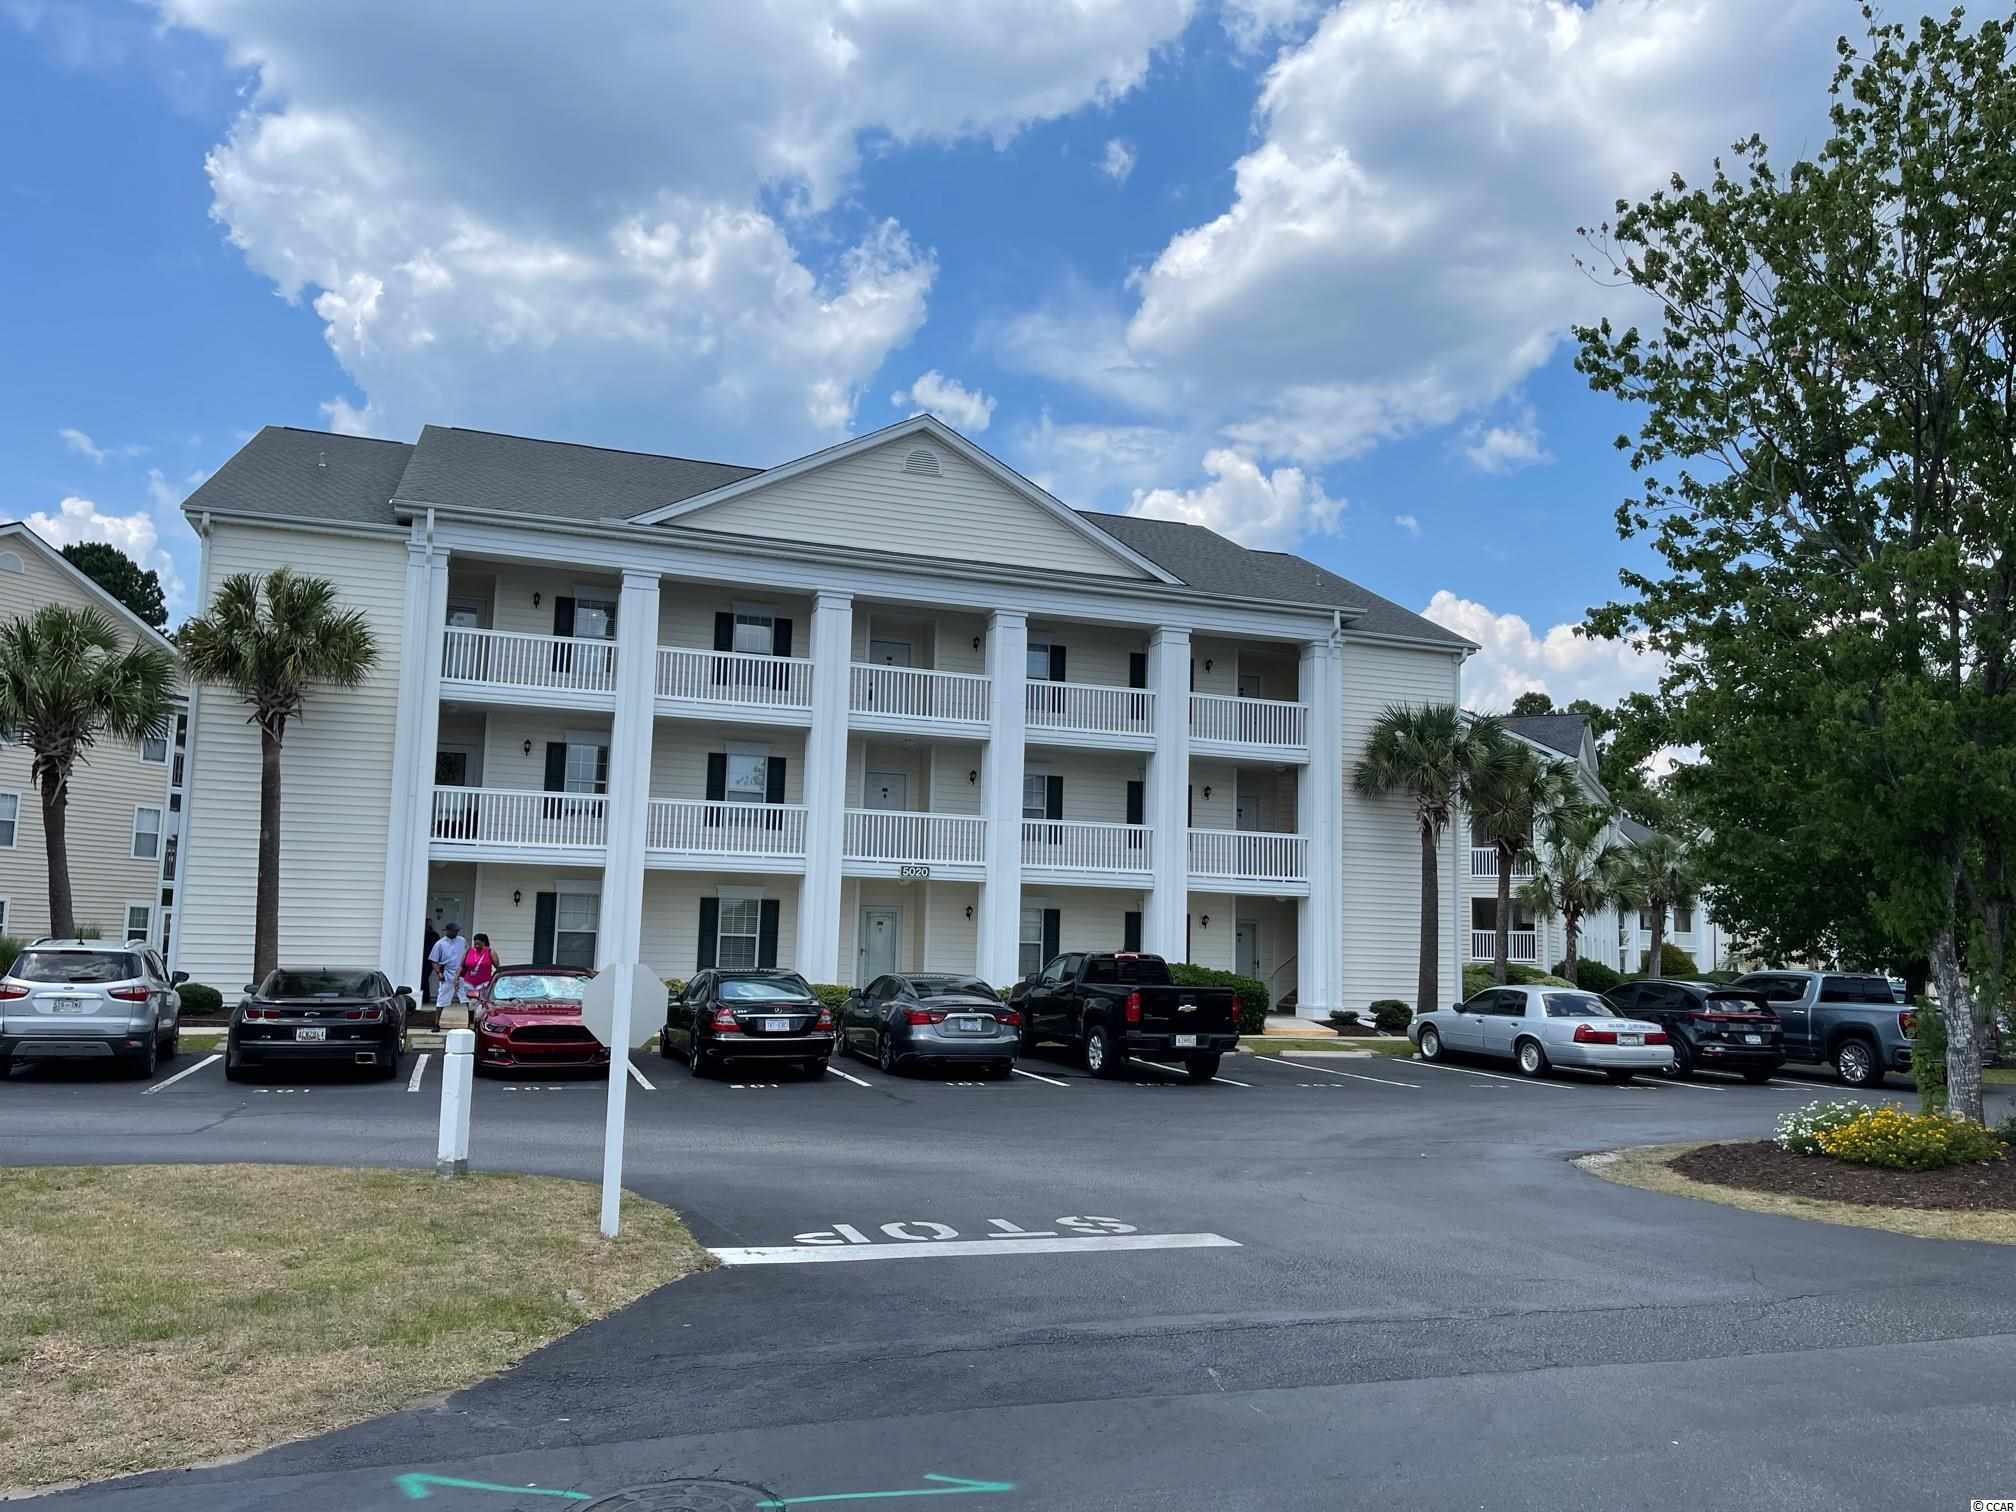 PANORAMIC VIEWS OF THE GOLF COURSE IN THIS SPACIOUS TOP FLOOR FULLY FURNISHED CONDO WITH VAULTED CEILINGS.  LIVING ROOM & MASTER BEDROOM OPEN TO THE SPACIOUS SCREENED BALCONY. ENJOY THE FABULOUS VIEWS GOLF WHILE DOING KITCHEN PREPARATIONS.  CLOSETS GALORE INCUDING HUGE MASTER WALK IN & LARGE LAUNDRY ROOM.  WINDSOR GREEN FEATURES LAKES, OUTDOOR POOLS & LOCATED CLOSE TO BEACH, SHOPPING, ENTERTAINMENT & RESTAURANTS.  GREAT PLACE FOR INVESTMENT OR TO CALL YOURS!